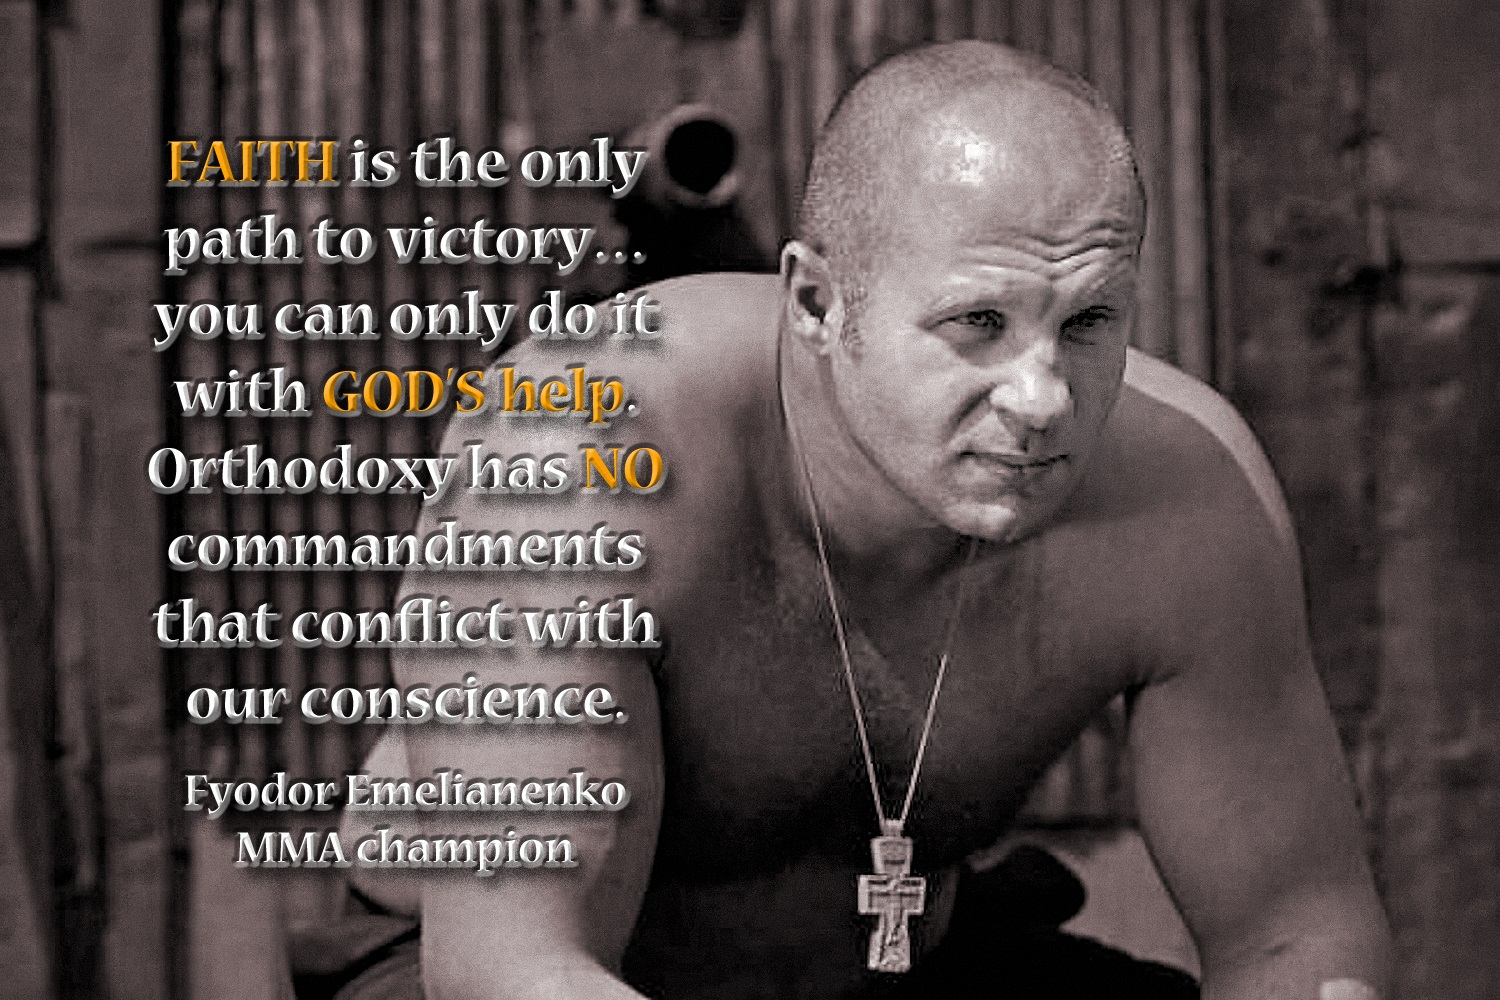 00 Fyodor Emelianenko faith 140716